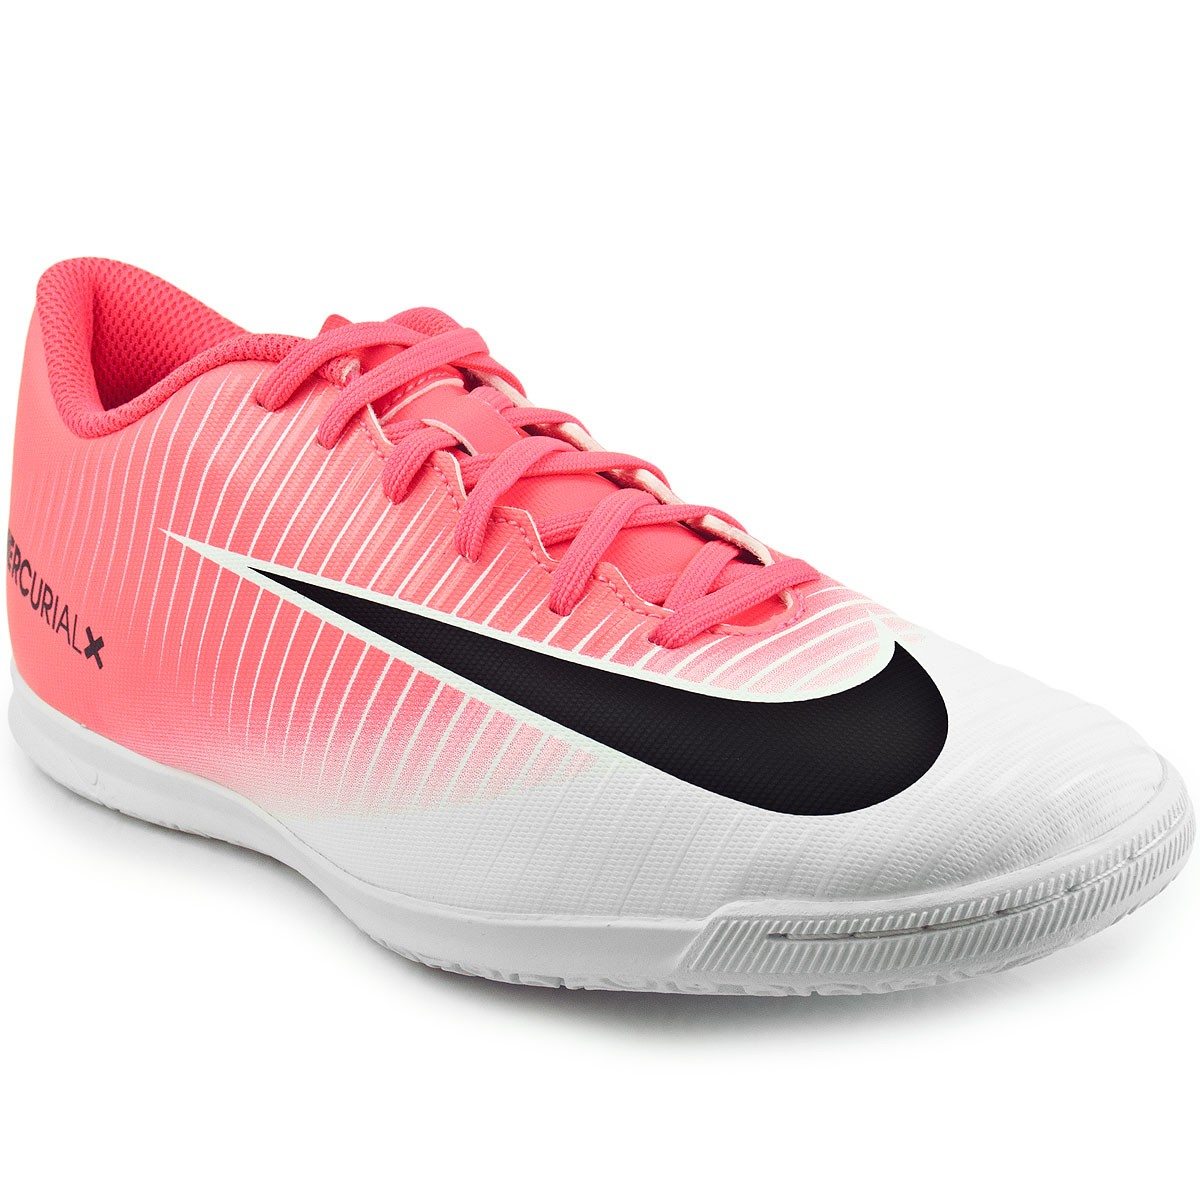 587cd4fb3c Chuteira Nike Mercurial Vortex III IC